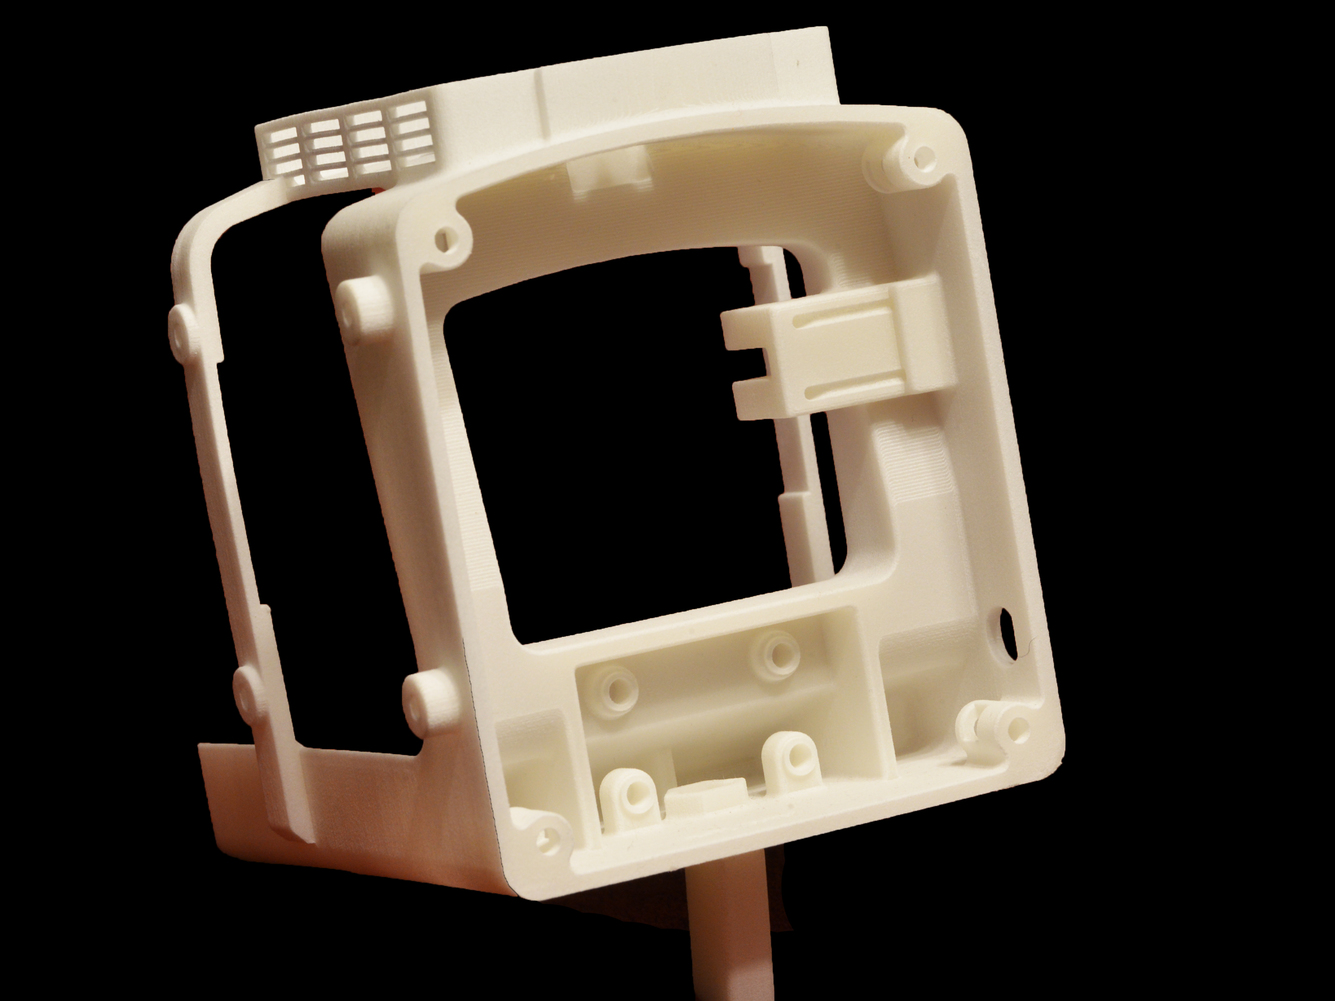 Complex, nylon, end-use 3D printed part